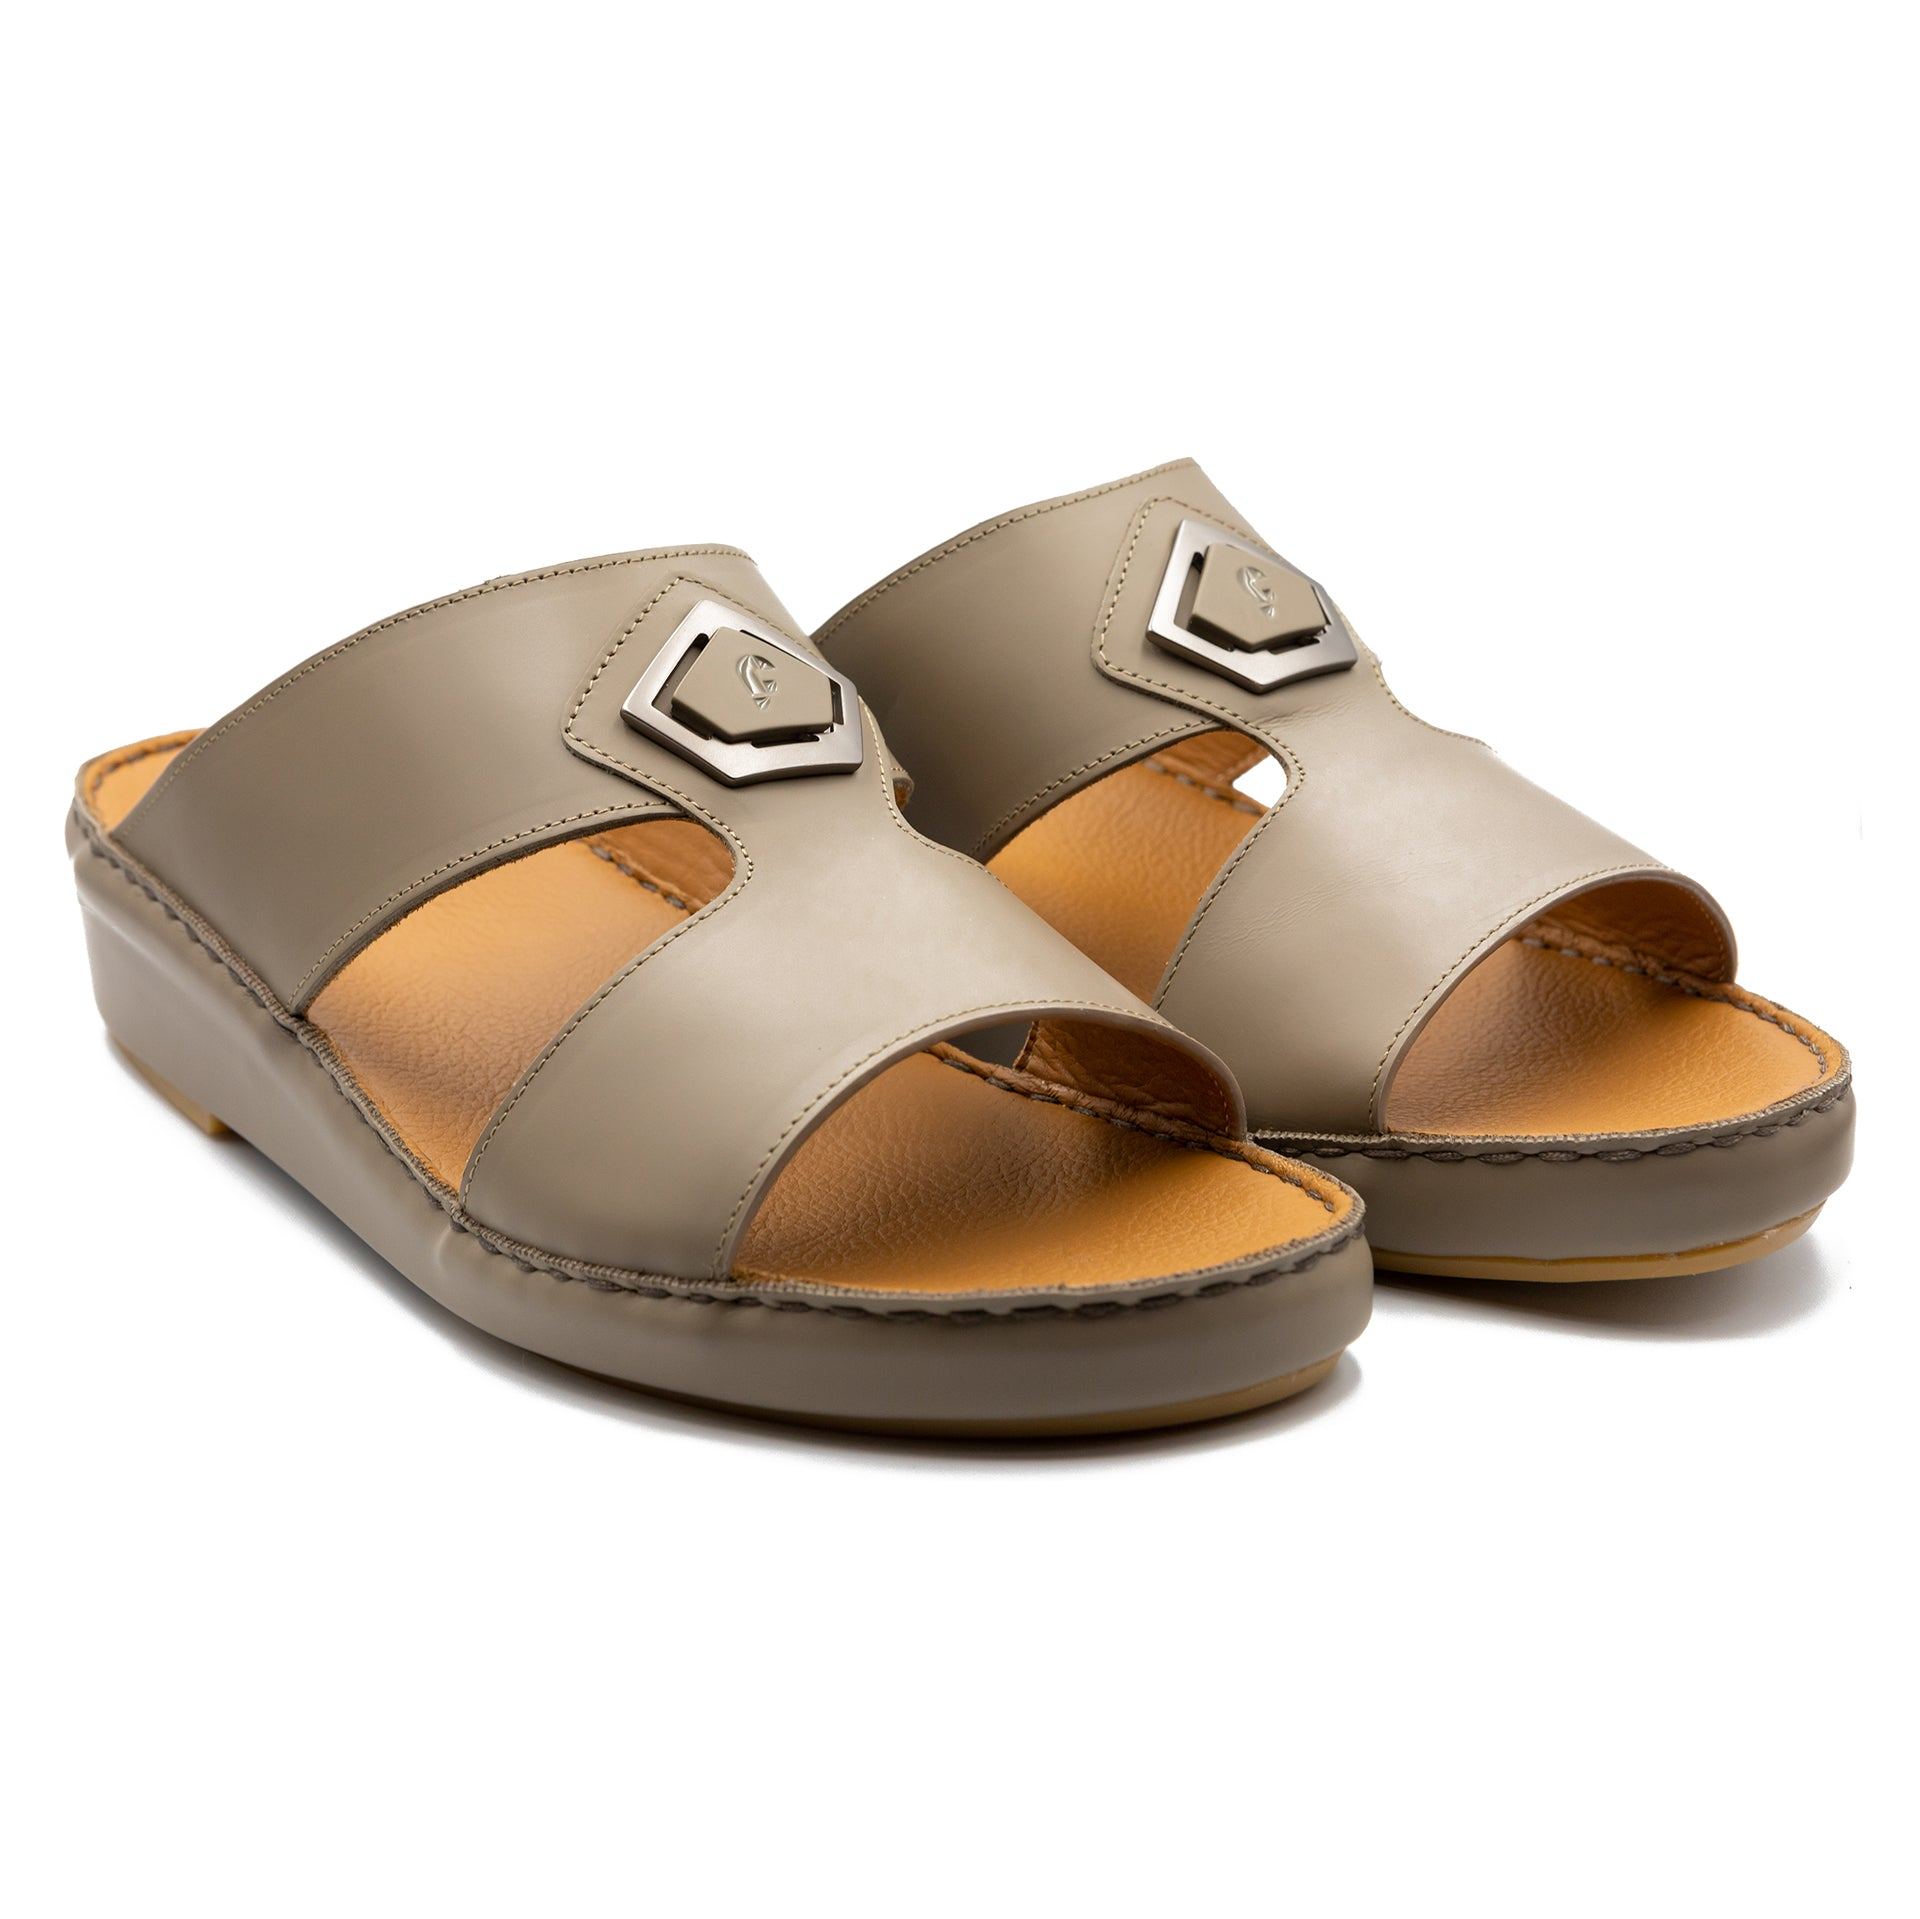 Earth Oxford Soft Matte Arabic sandal (317-84)